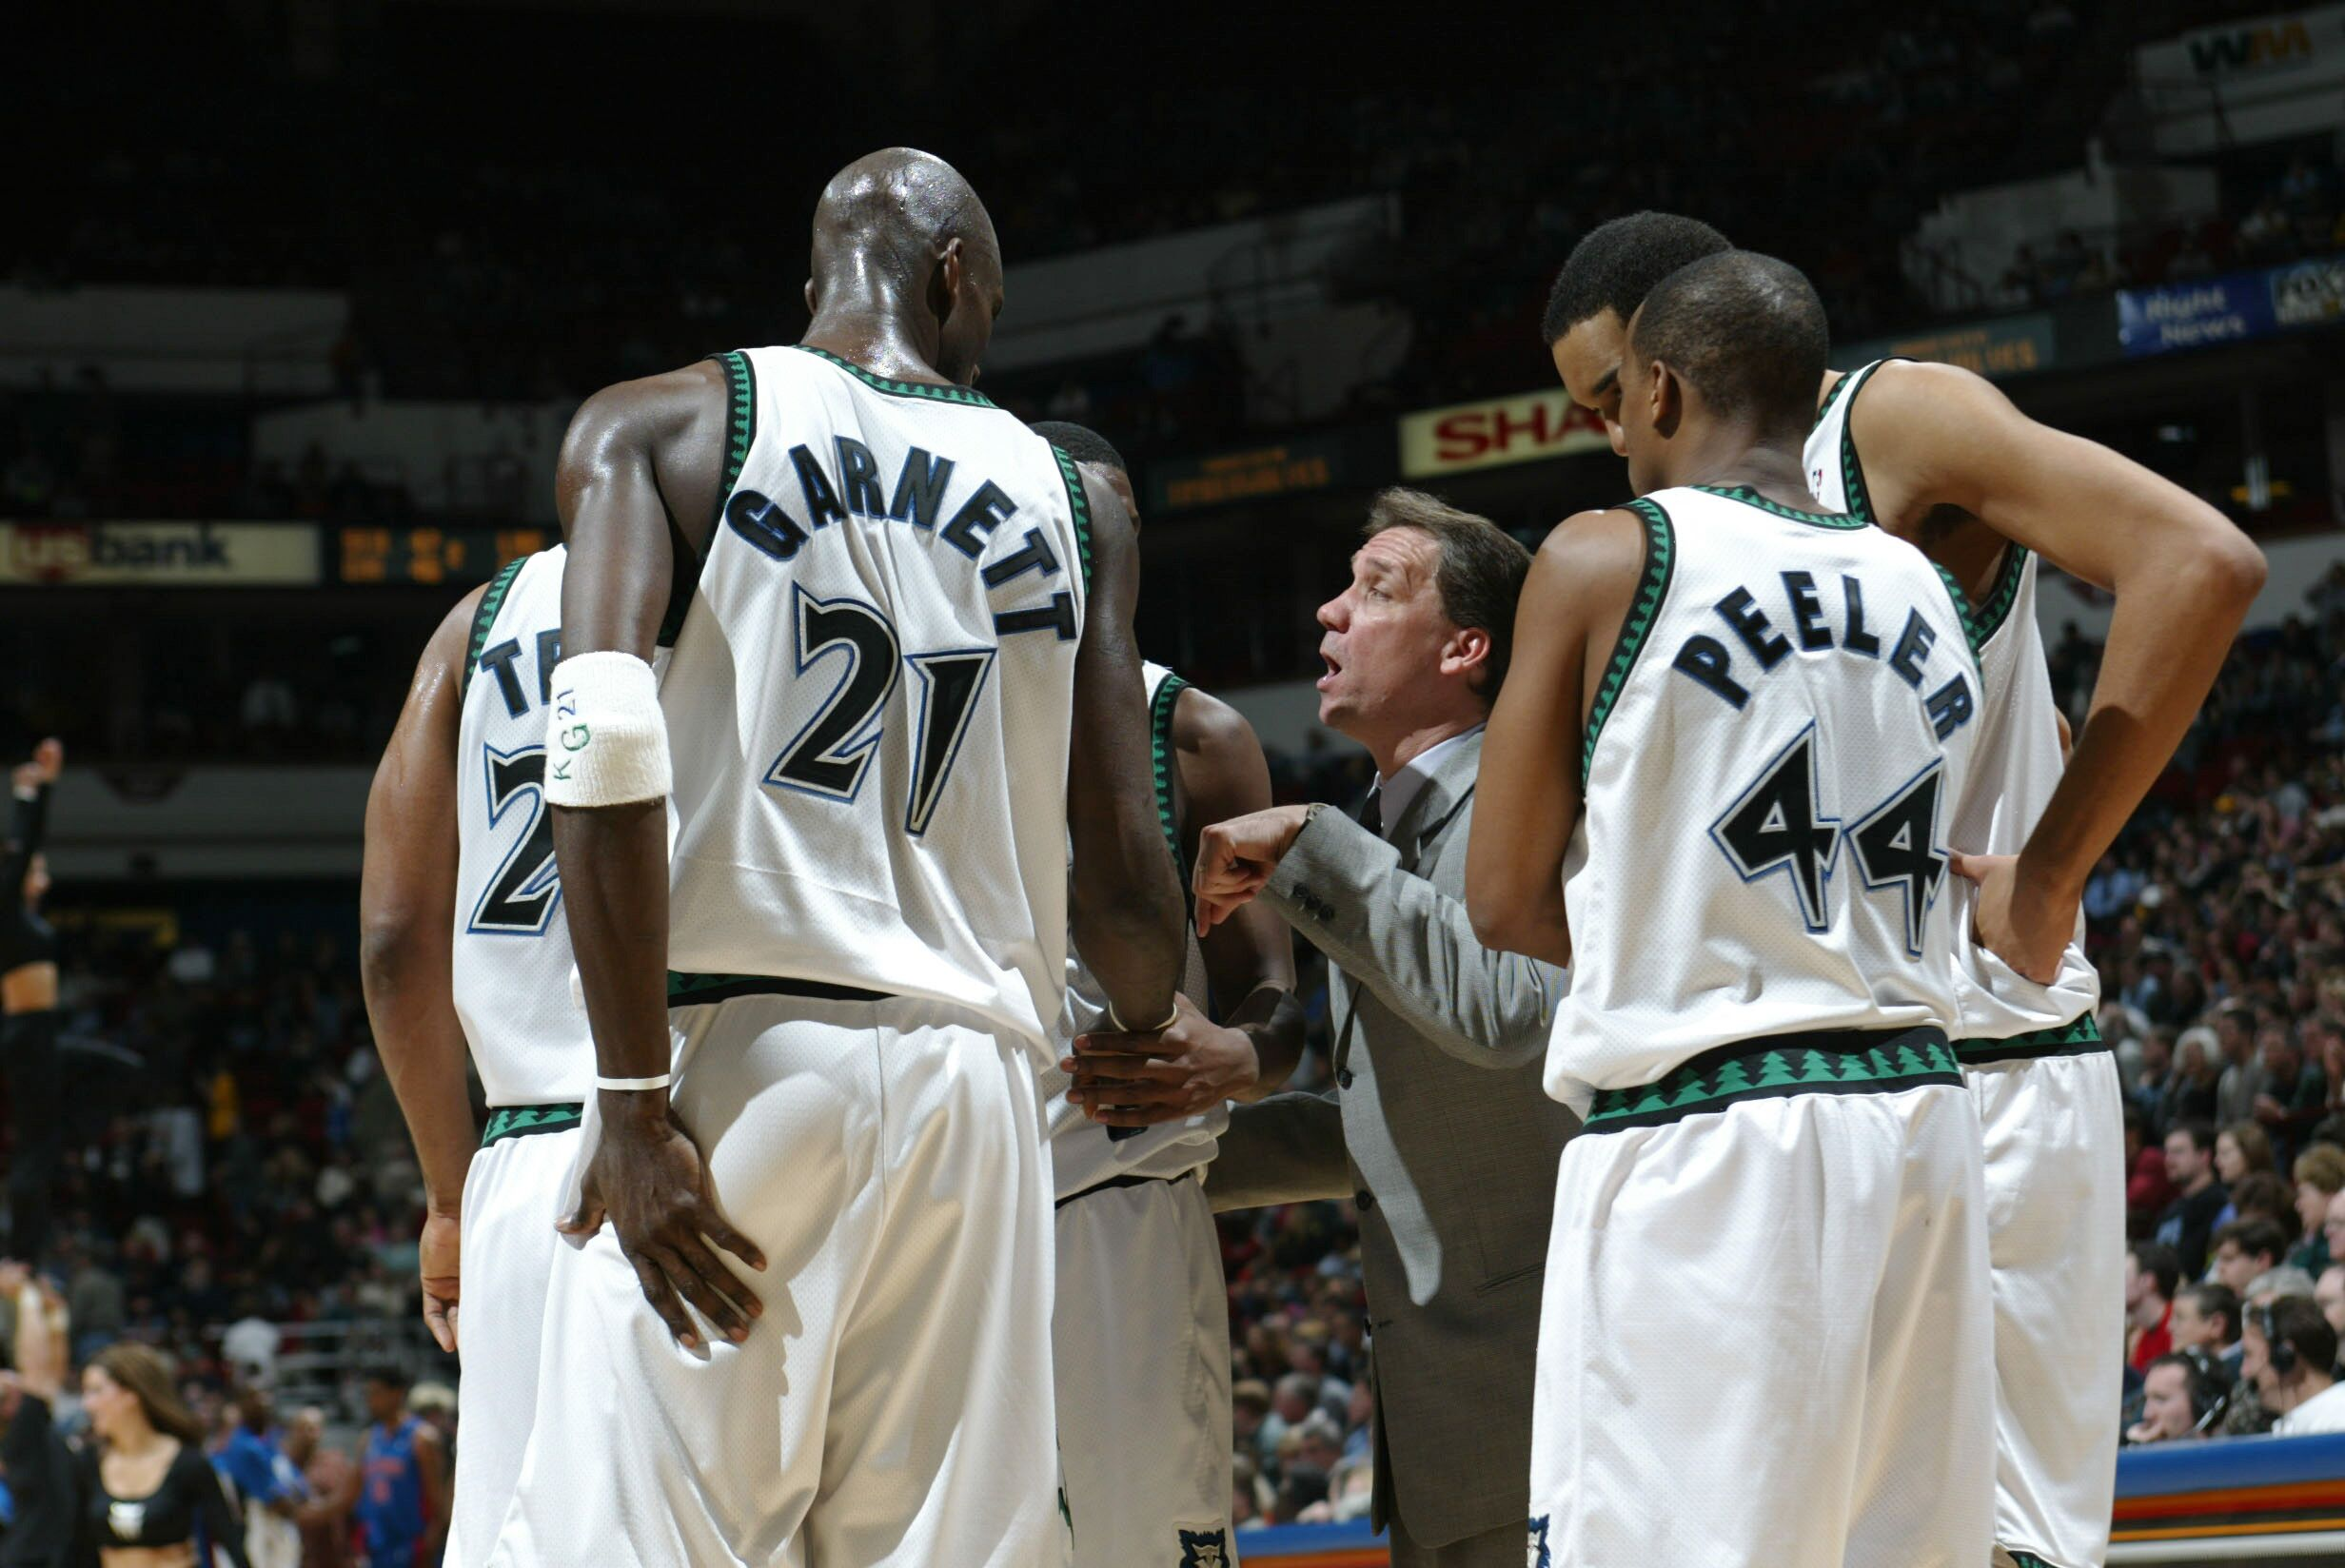 1486317-coach-flip-saunders-of-the-minnesota-timberwolves-gives-his-team-some-last-minute-instructions.jpg